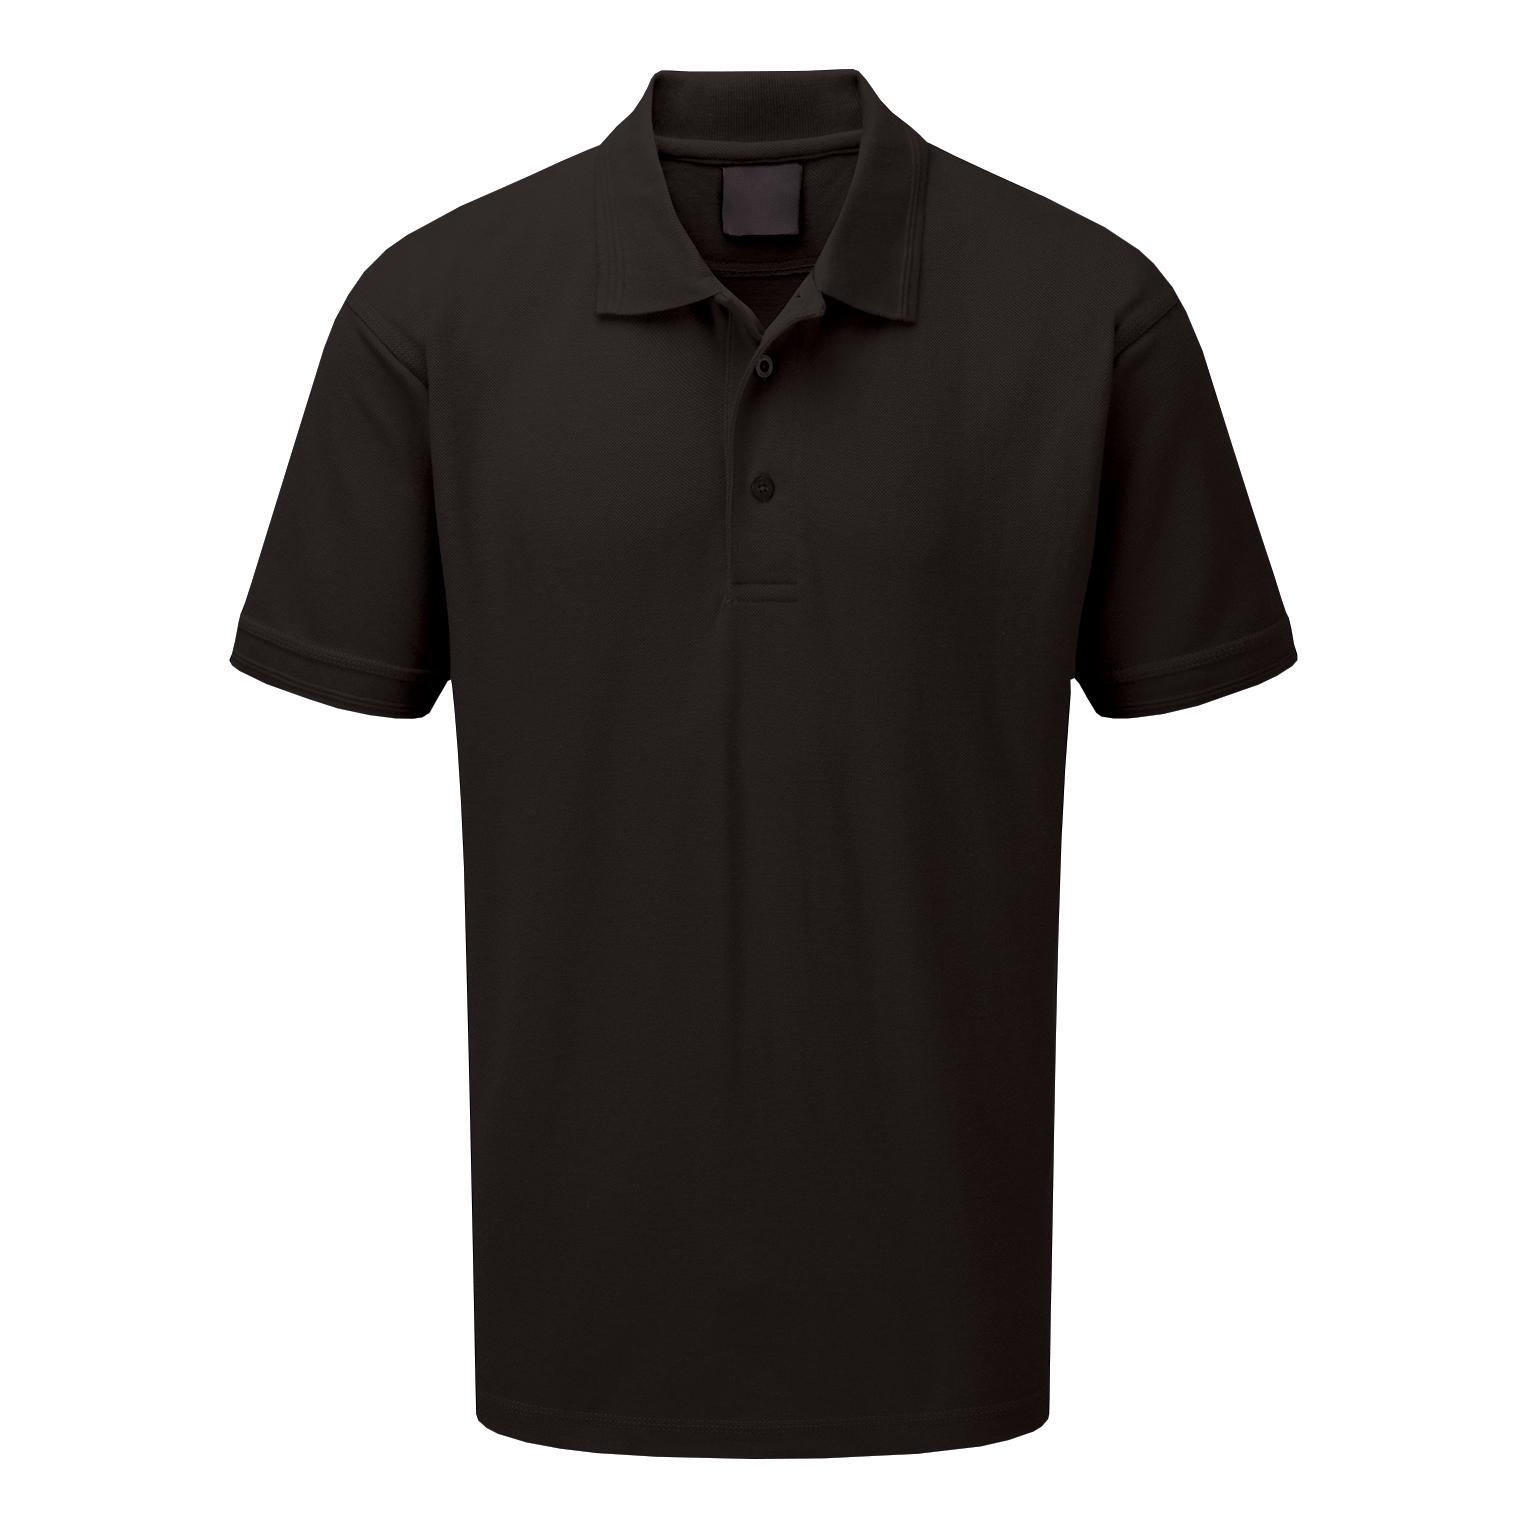 Click Workwear Polo Shirt Polycotton 200gsm 3XL Black Ref CLPKSBLXXXL 1-3 Days Lead Time